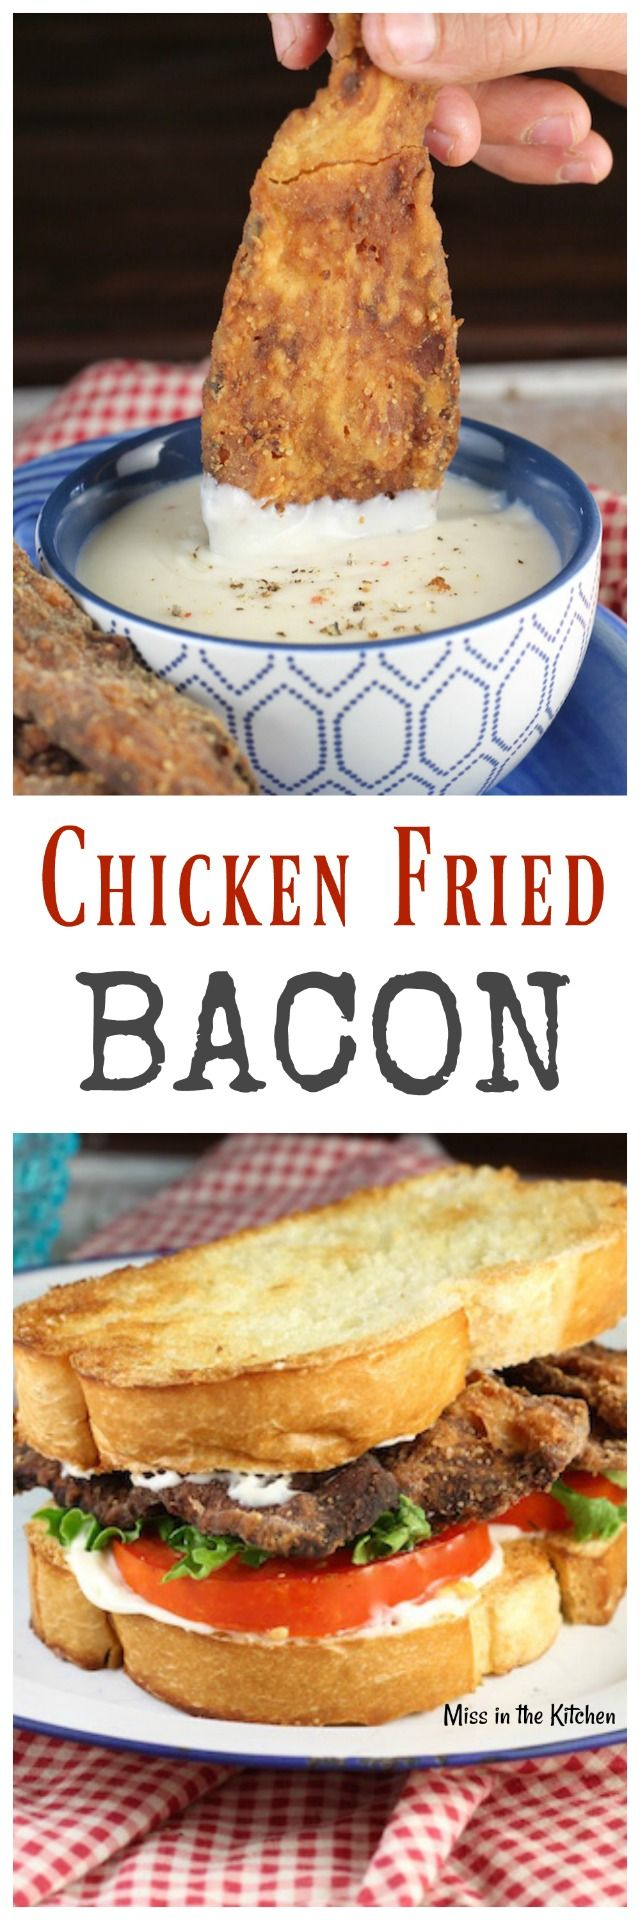 Chicken Fried Bacon Recipe is an epic appetizer or makes the best BLT you have ever tried! MissintheKitchen.com (ham sandwich recipes appetizers)